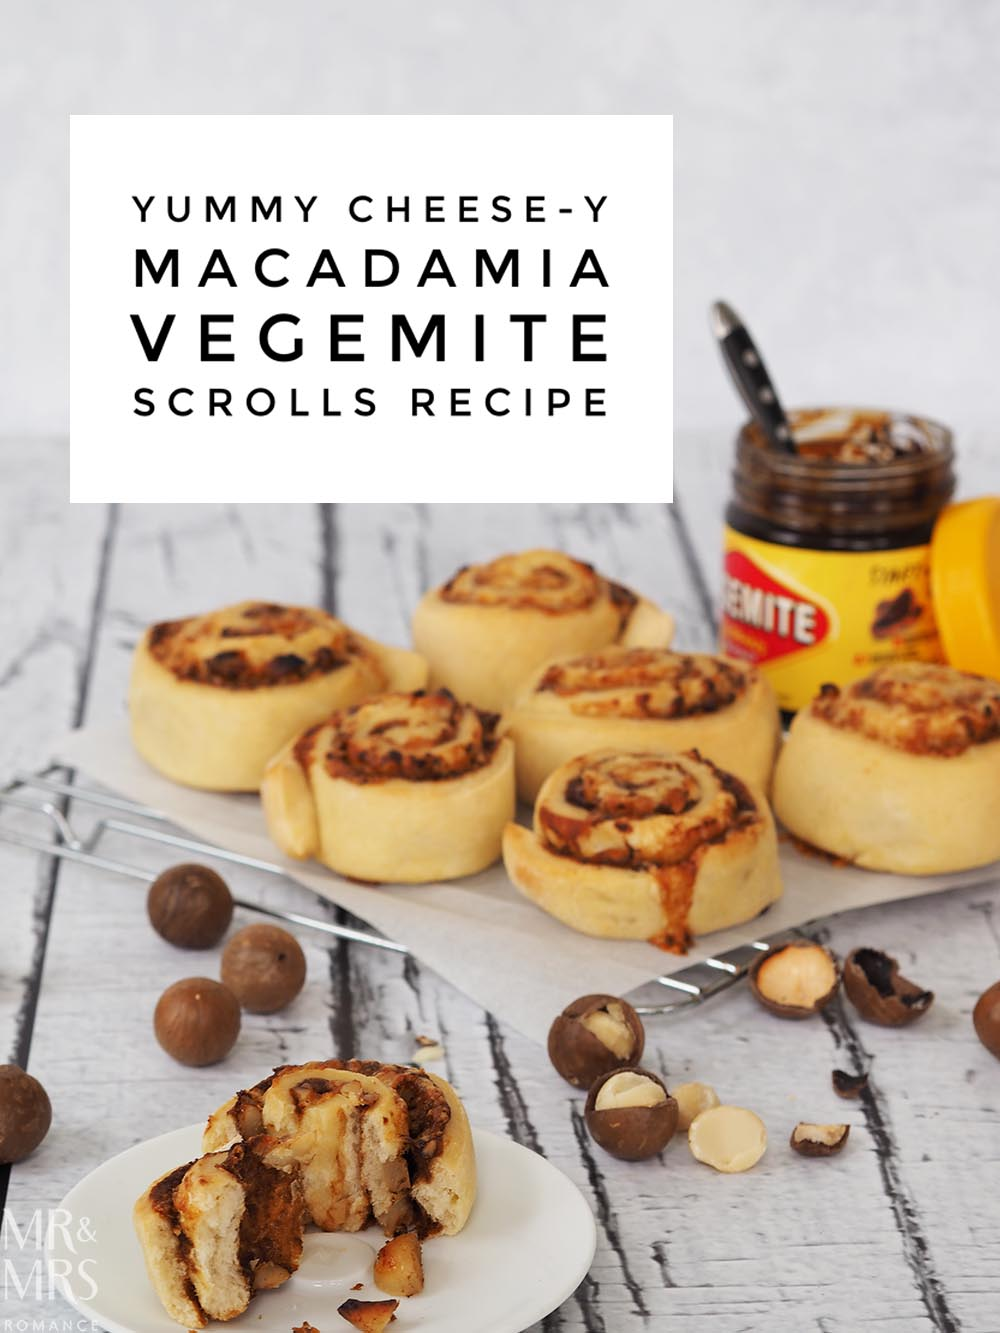 Cheese Macadamia Vegemite scrolls recipe - Mr & Mrs Romance